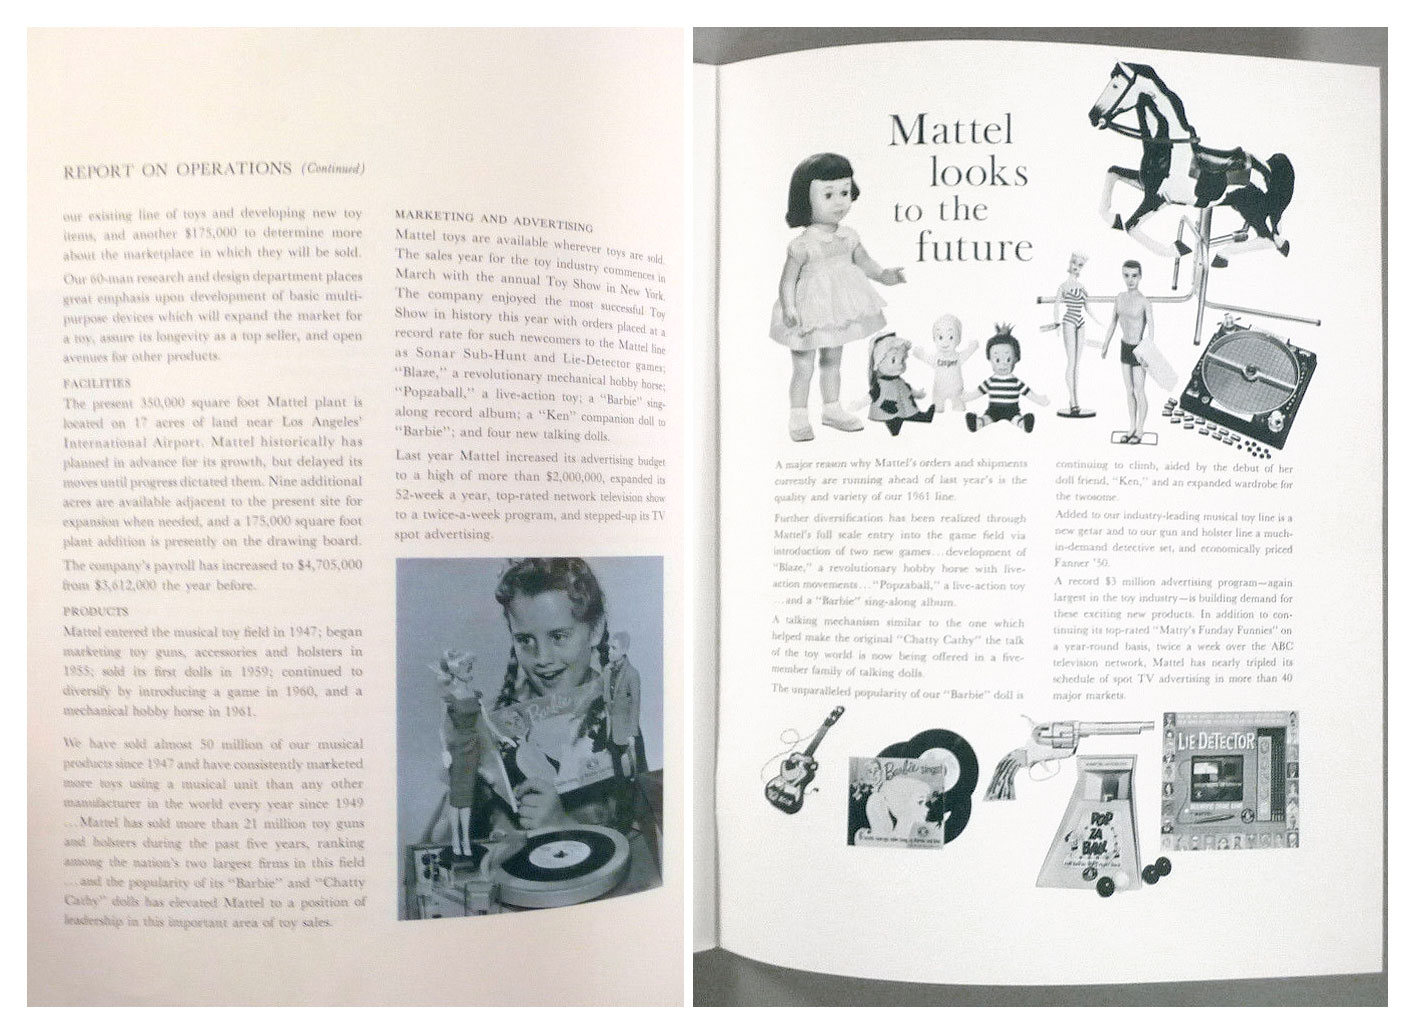 From Mattel Annual Report February 1961